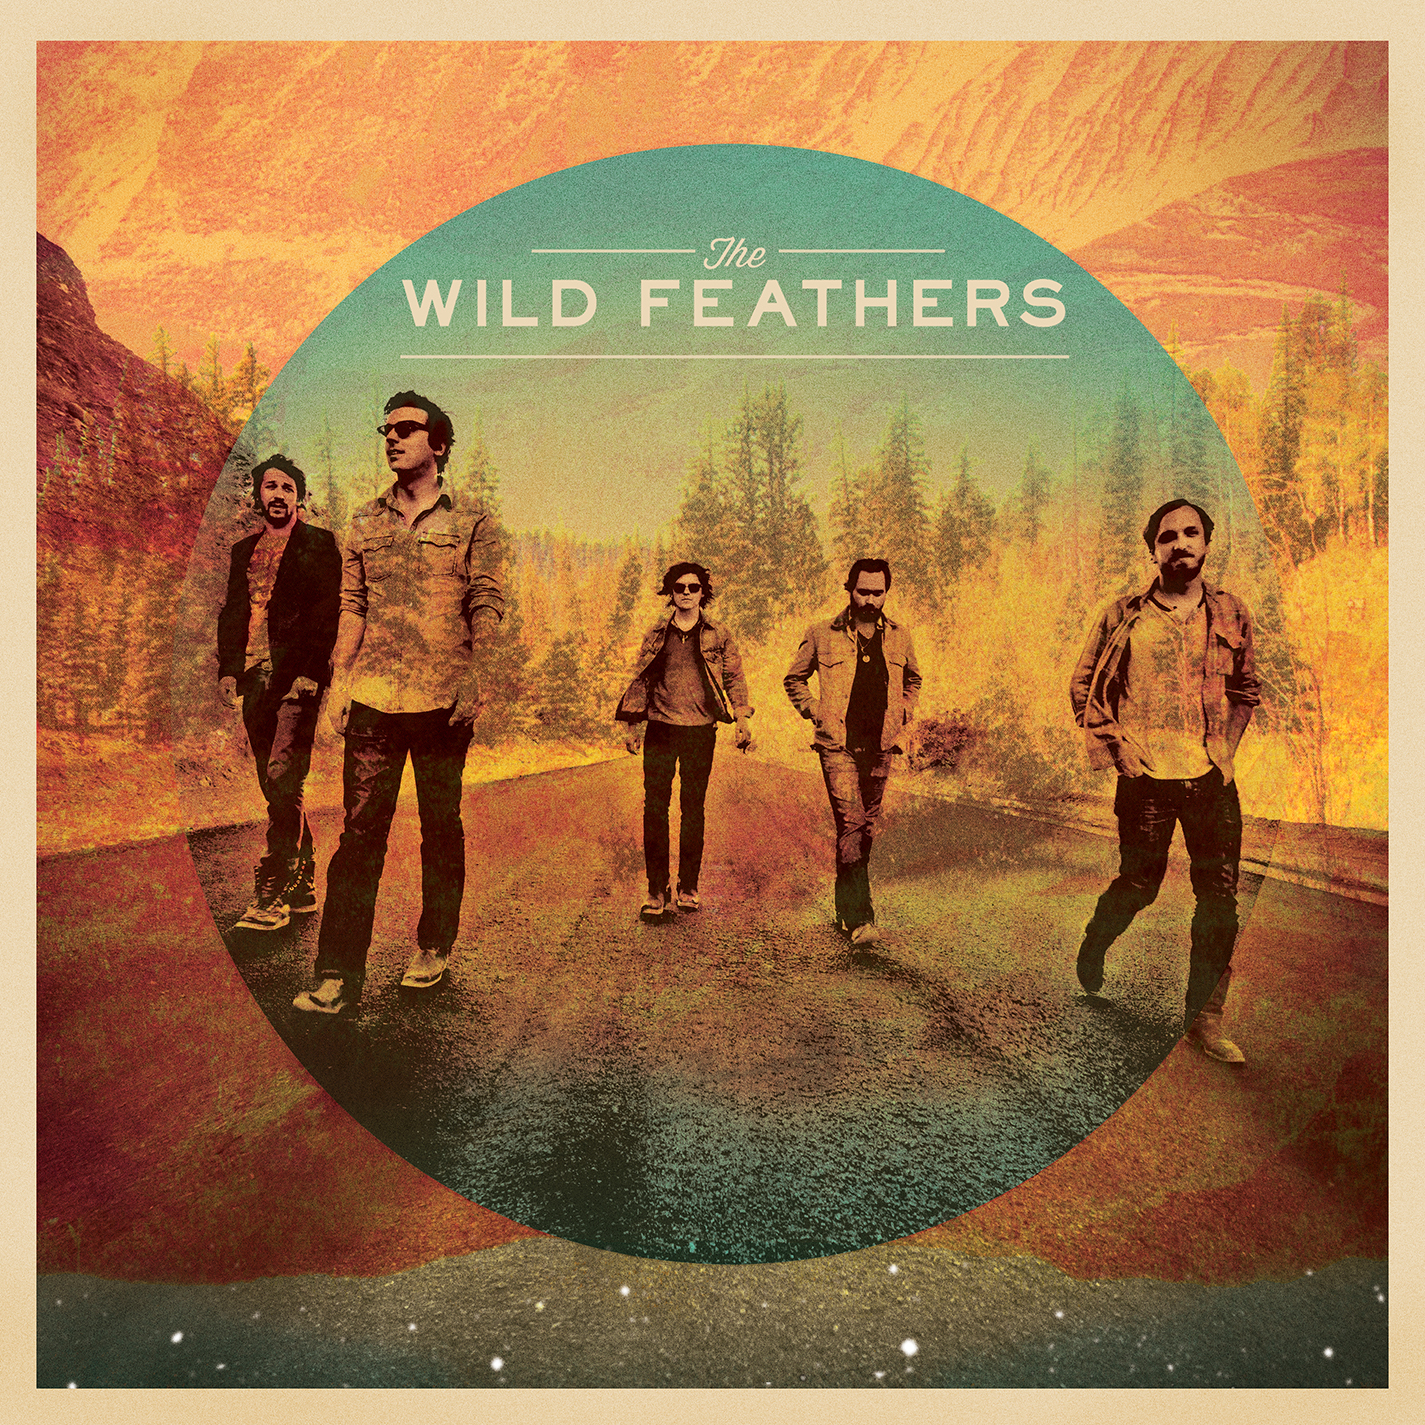 http://www.media.wmg-is.com/media/portal/media/cms/images/201307/the-wild-feathers-extralarge_1373389984803.jpg